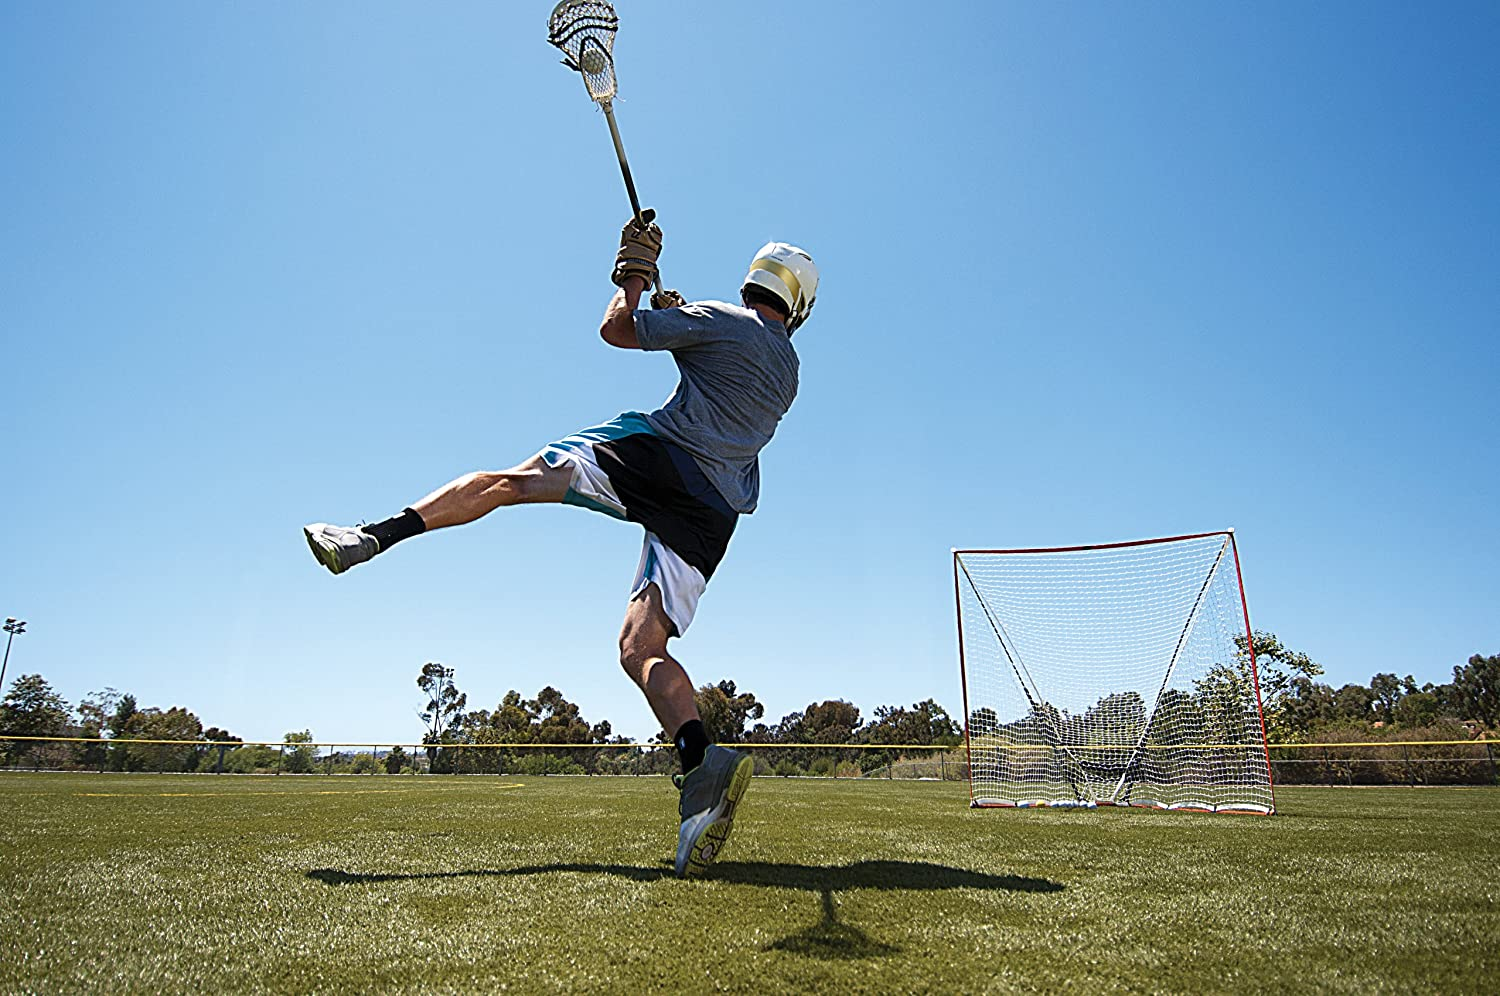 sklz quickster lacrosse goal with portable practice net goals